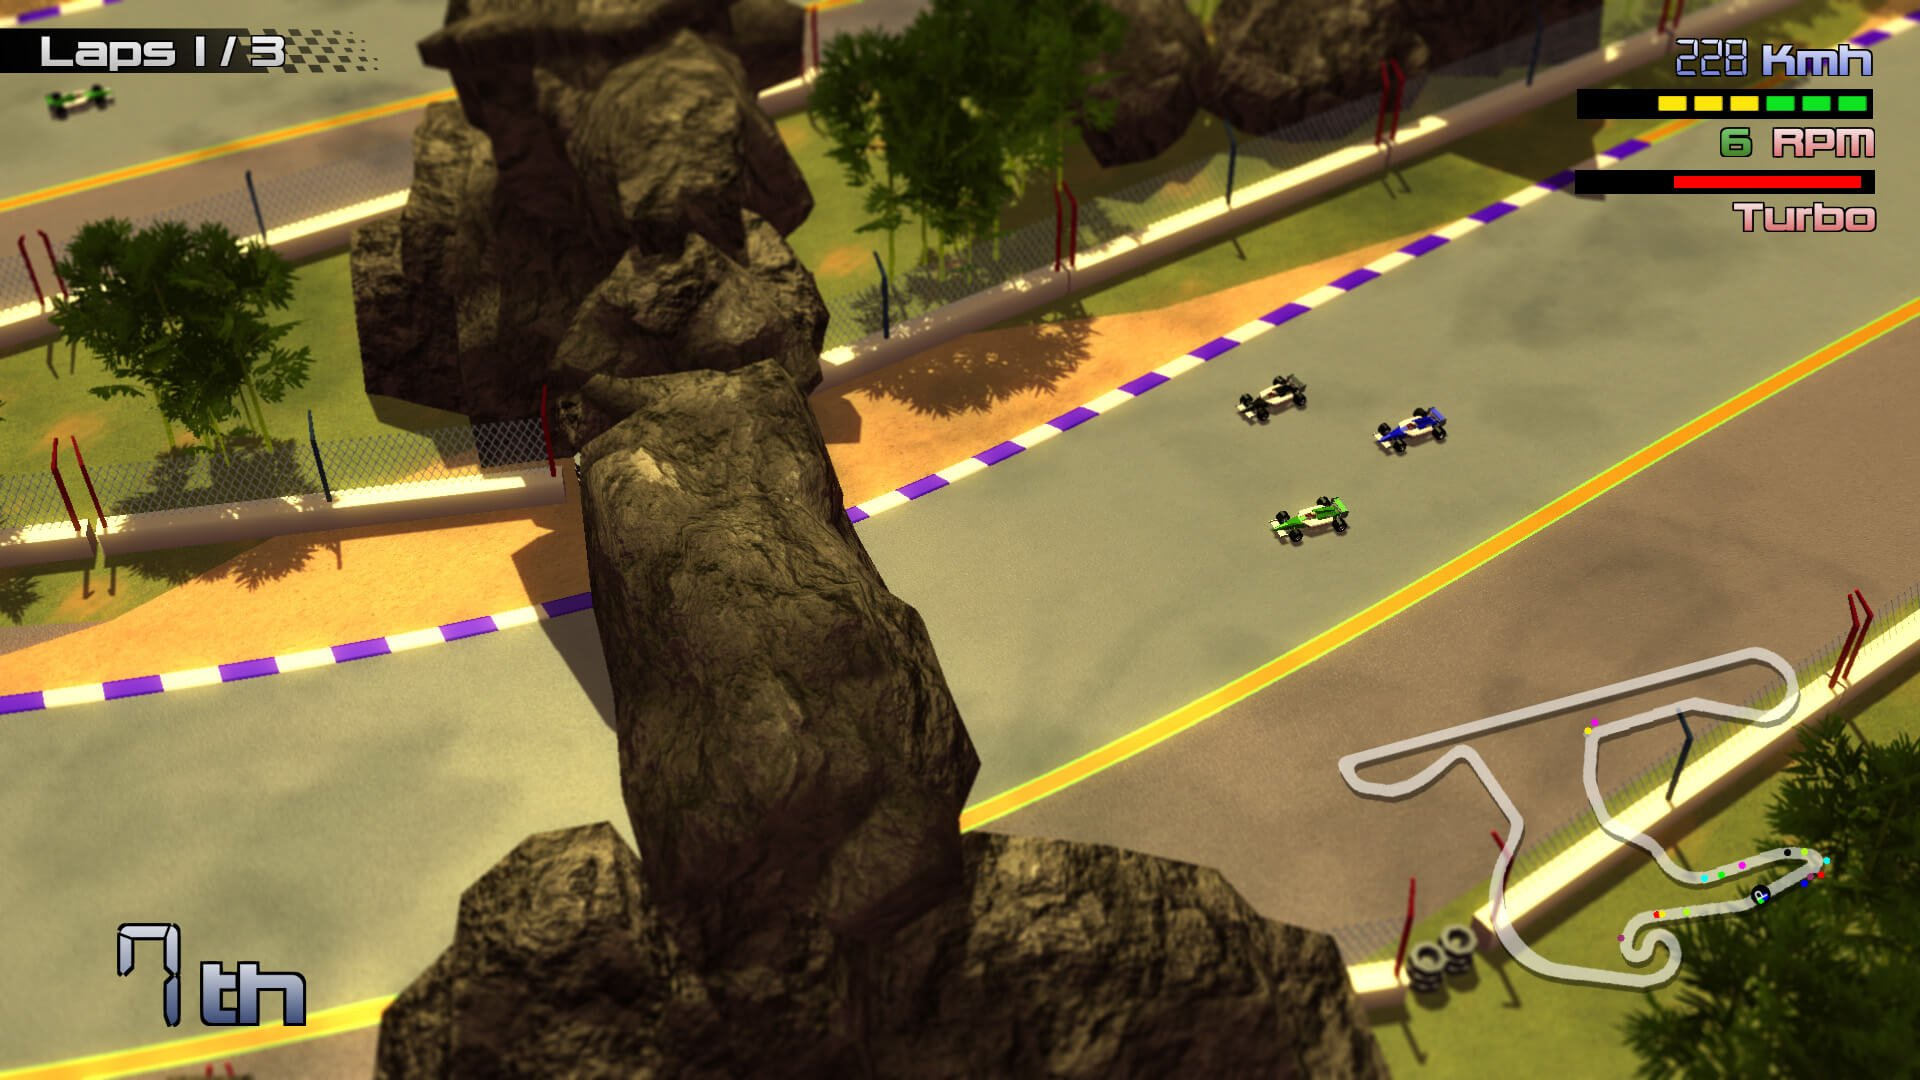 Grand Prix Rock 'N Racing Will Race Onto Xbox One This Month